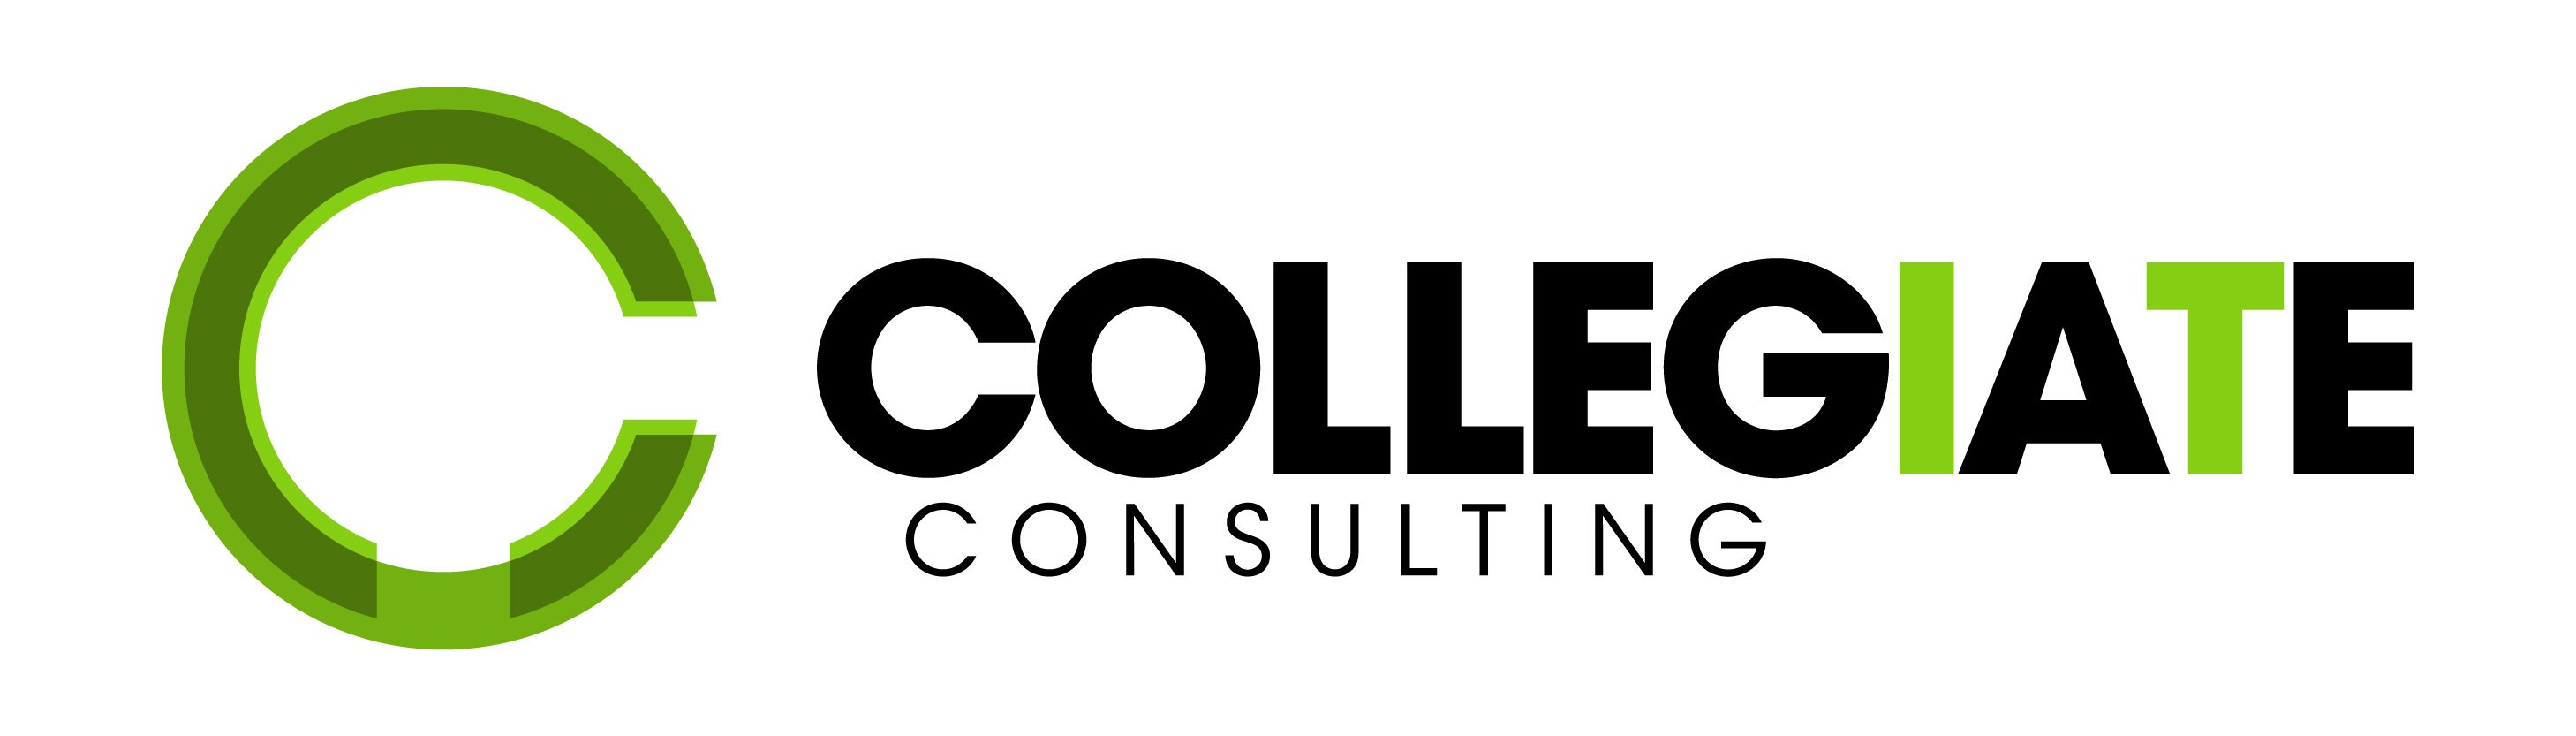 Collegiate Consulting